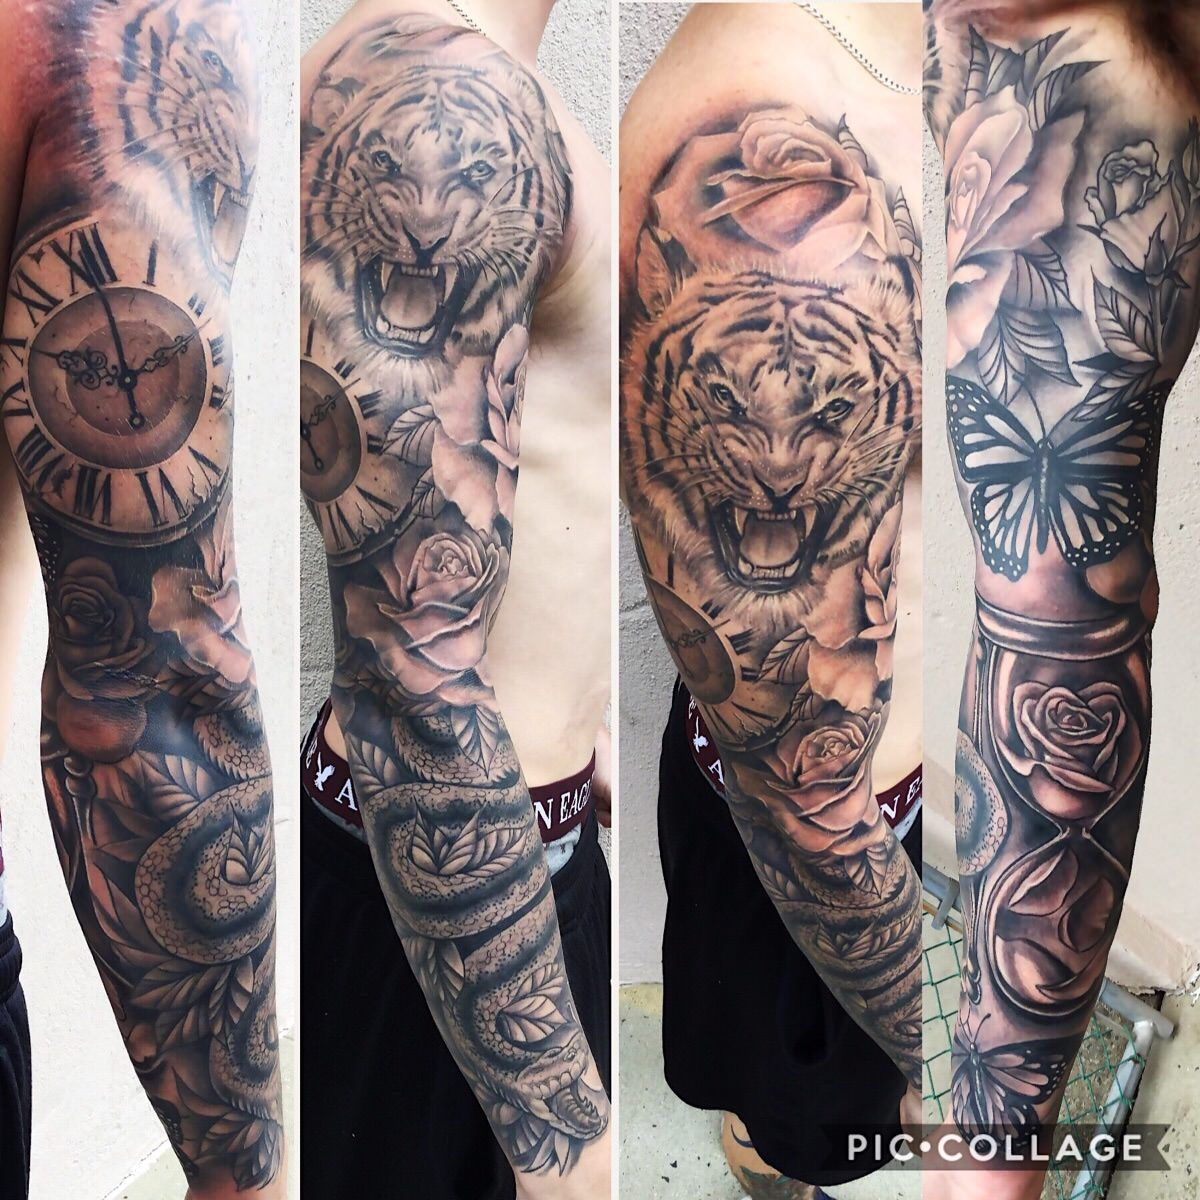 My Sleeve Done By Amanda Nicole At Iron Flag Tattoo In Toms River